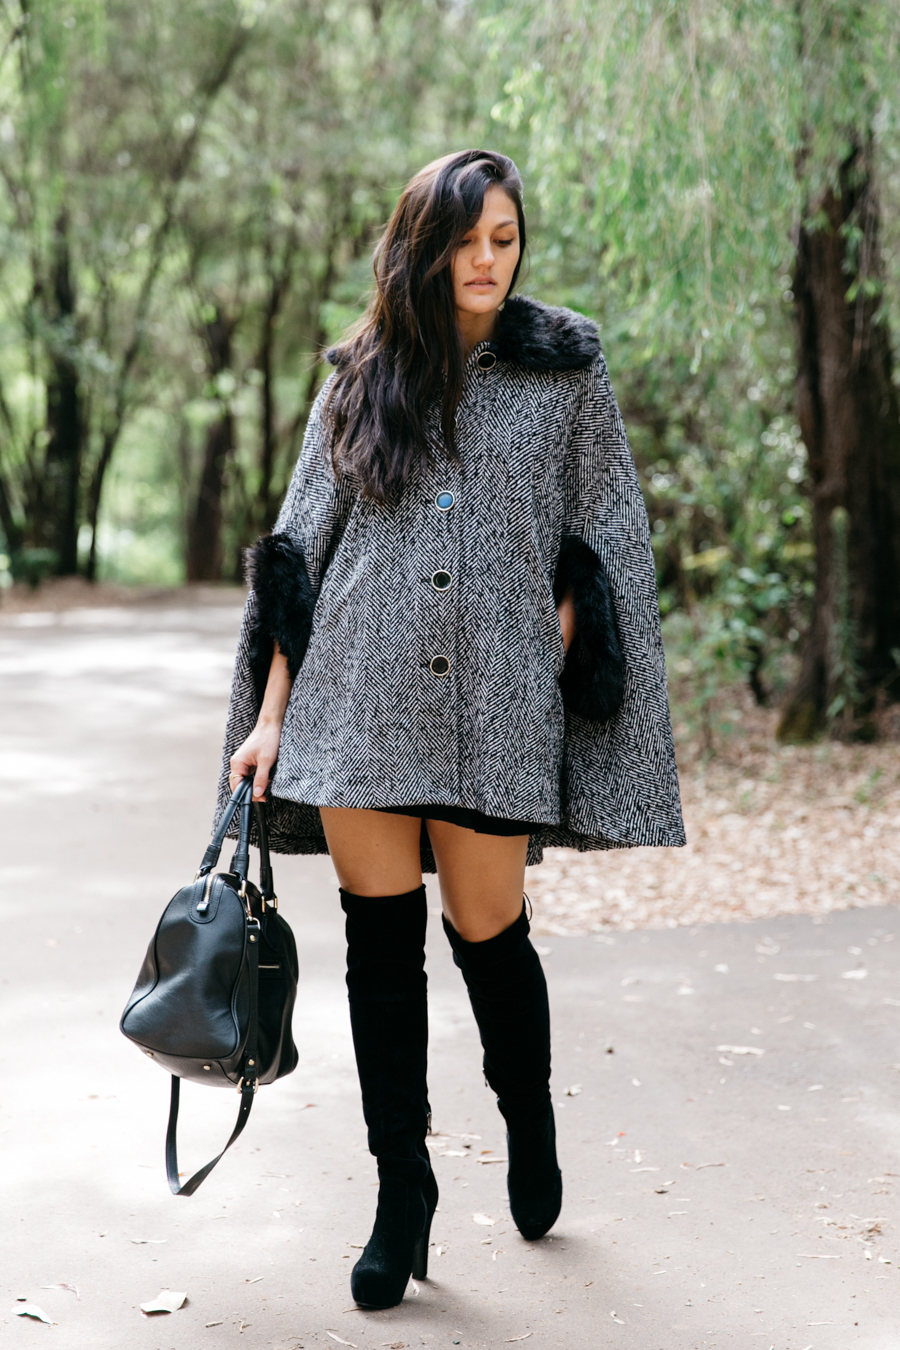 Fur cape & over the knee boots.